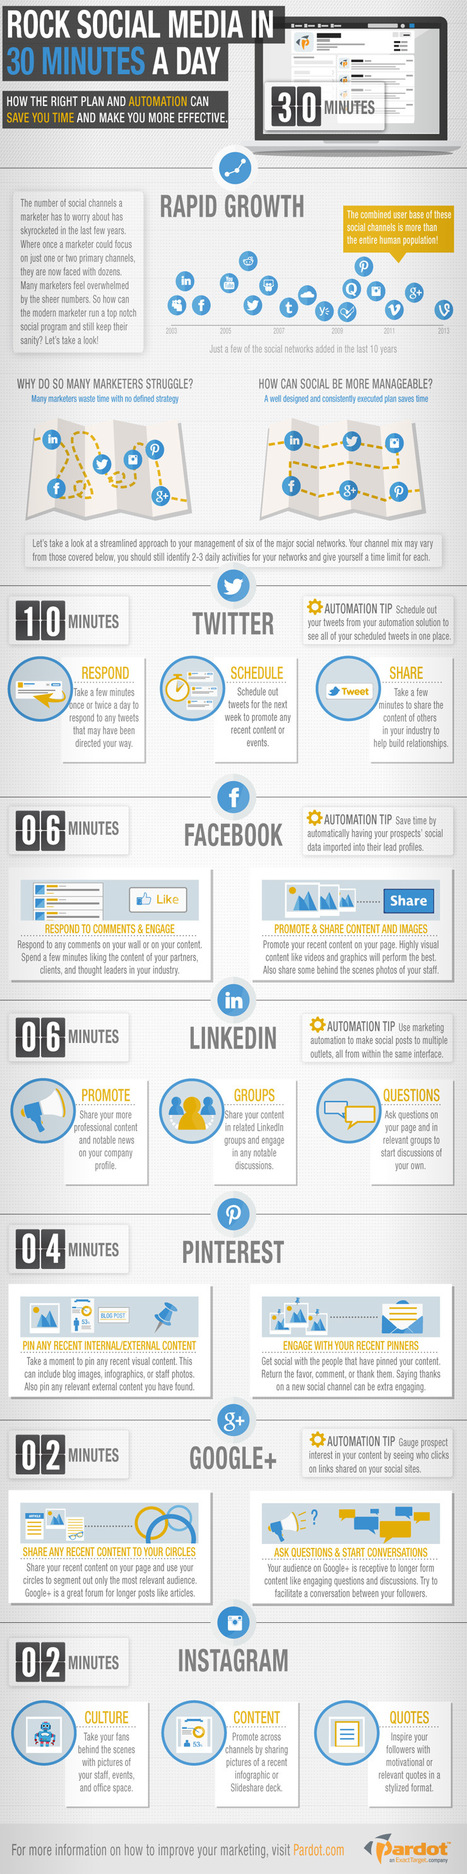 How to Rock your Social Media in 30 minutes a day – infographic | Interesting Stuff from around the web | Scoop.it